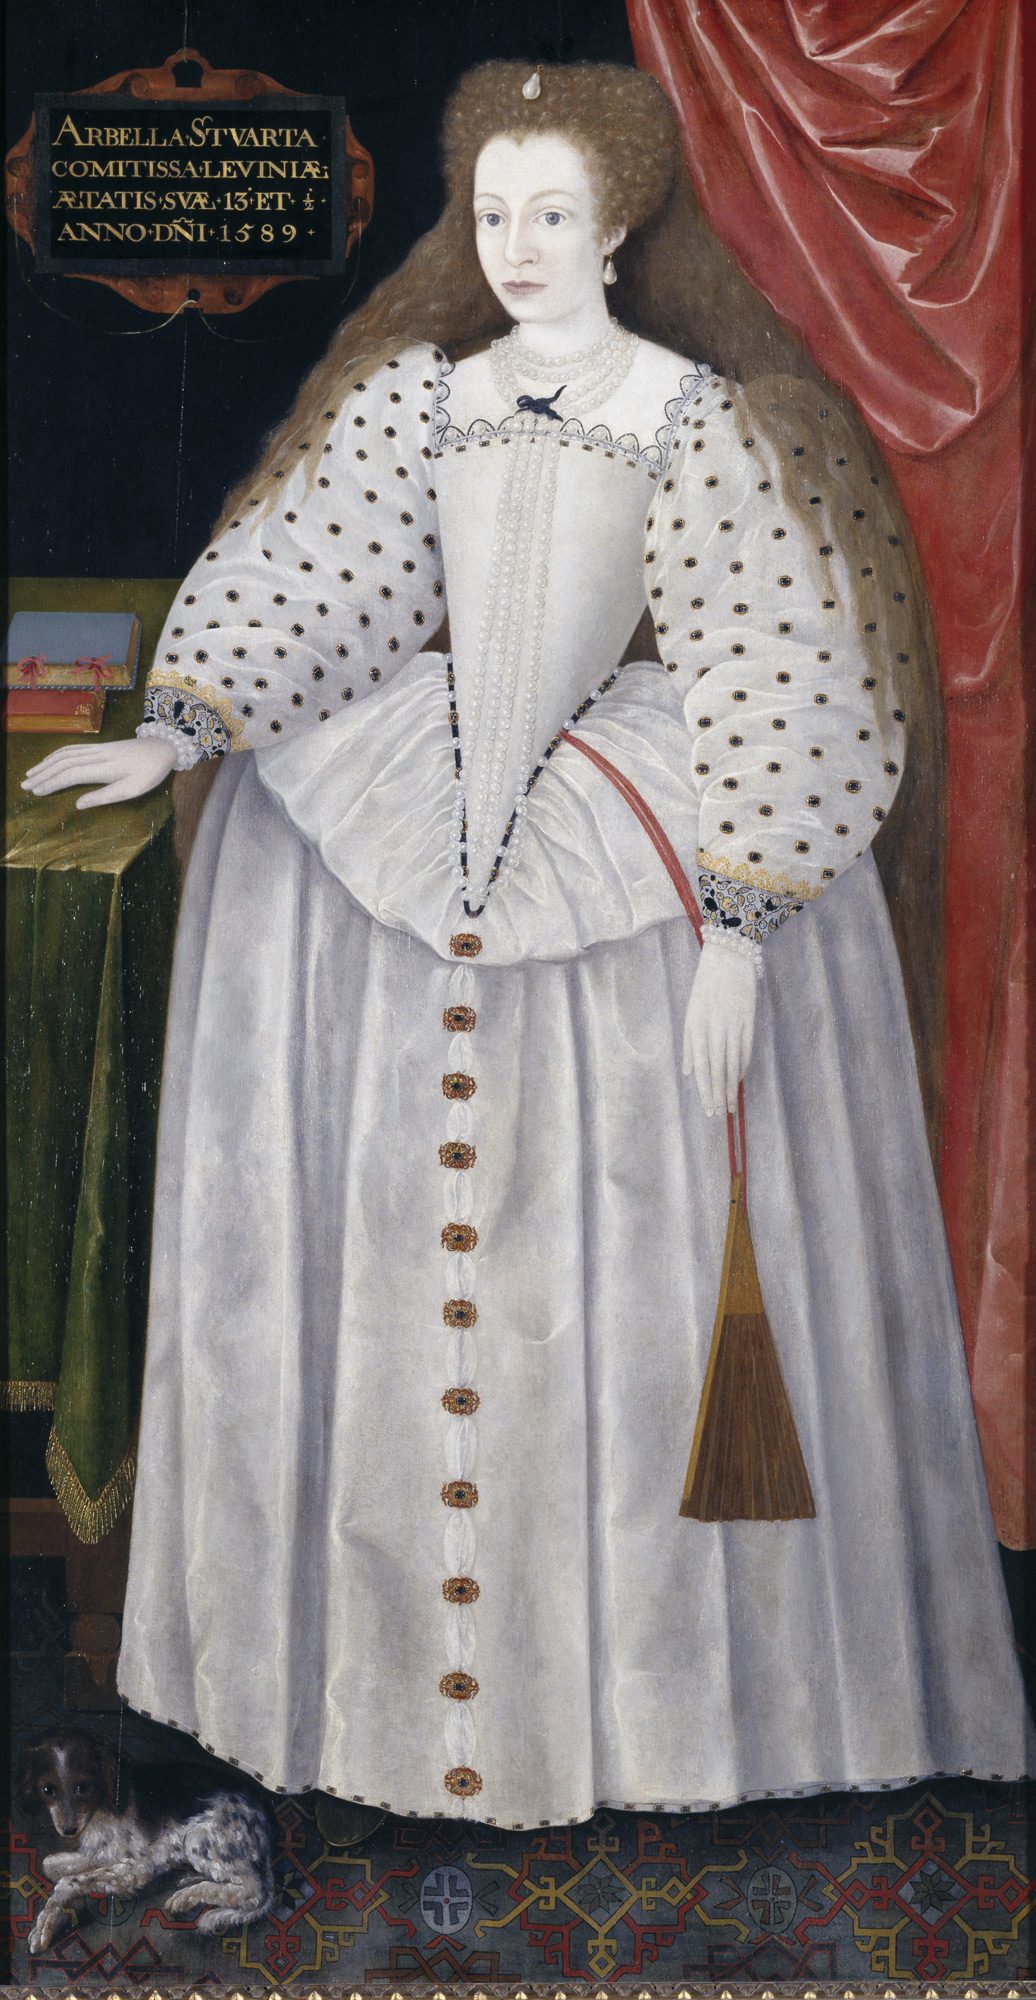 Portrait of Lady Arbella Stuart, 1589